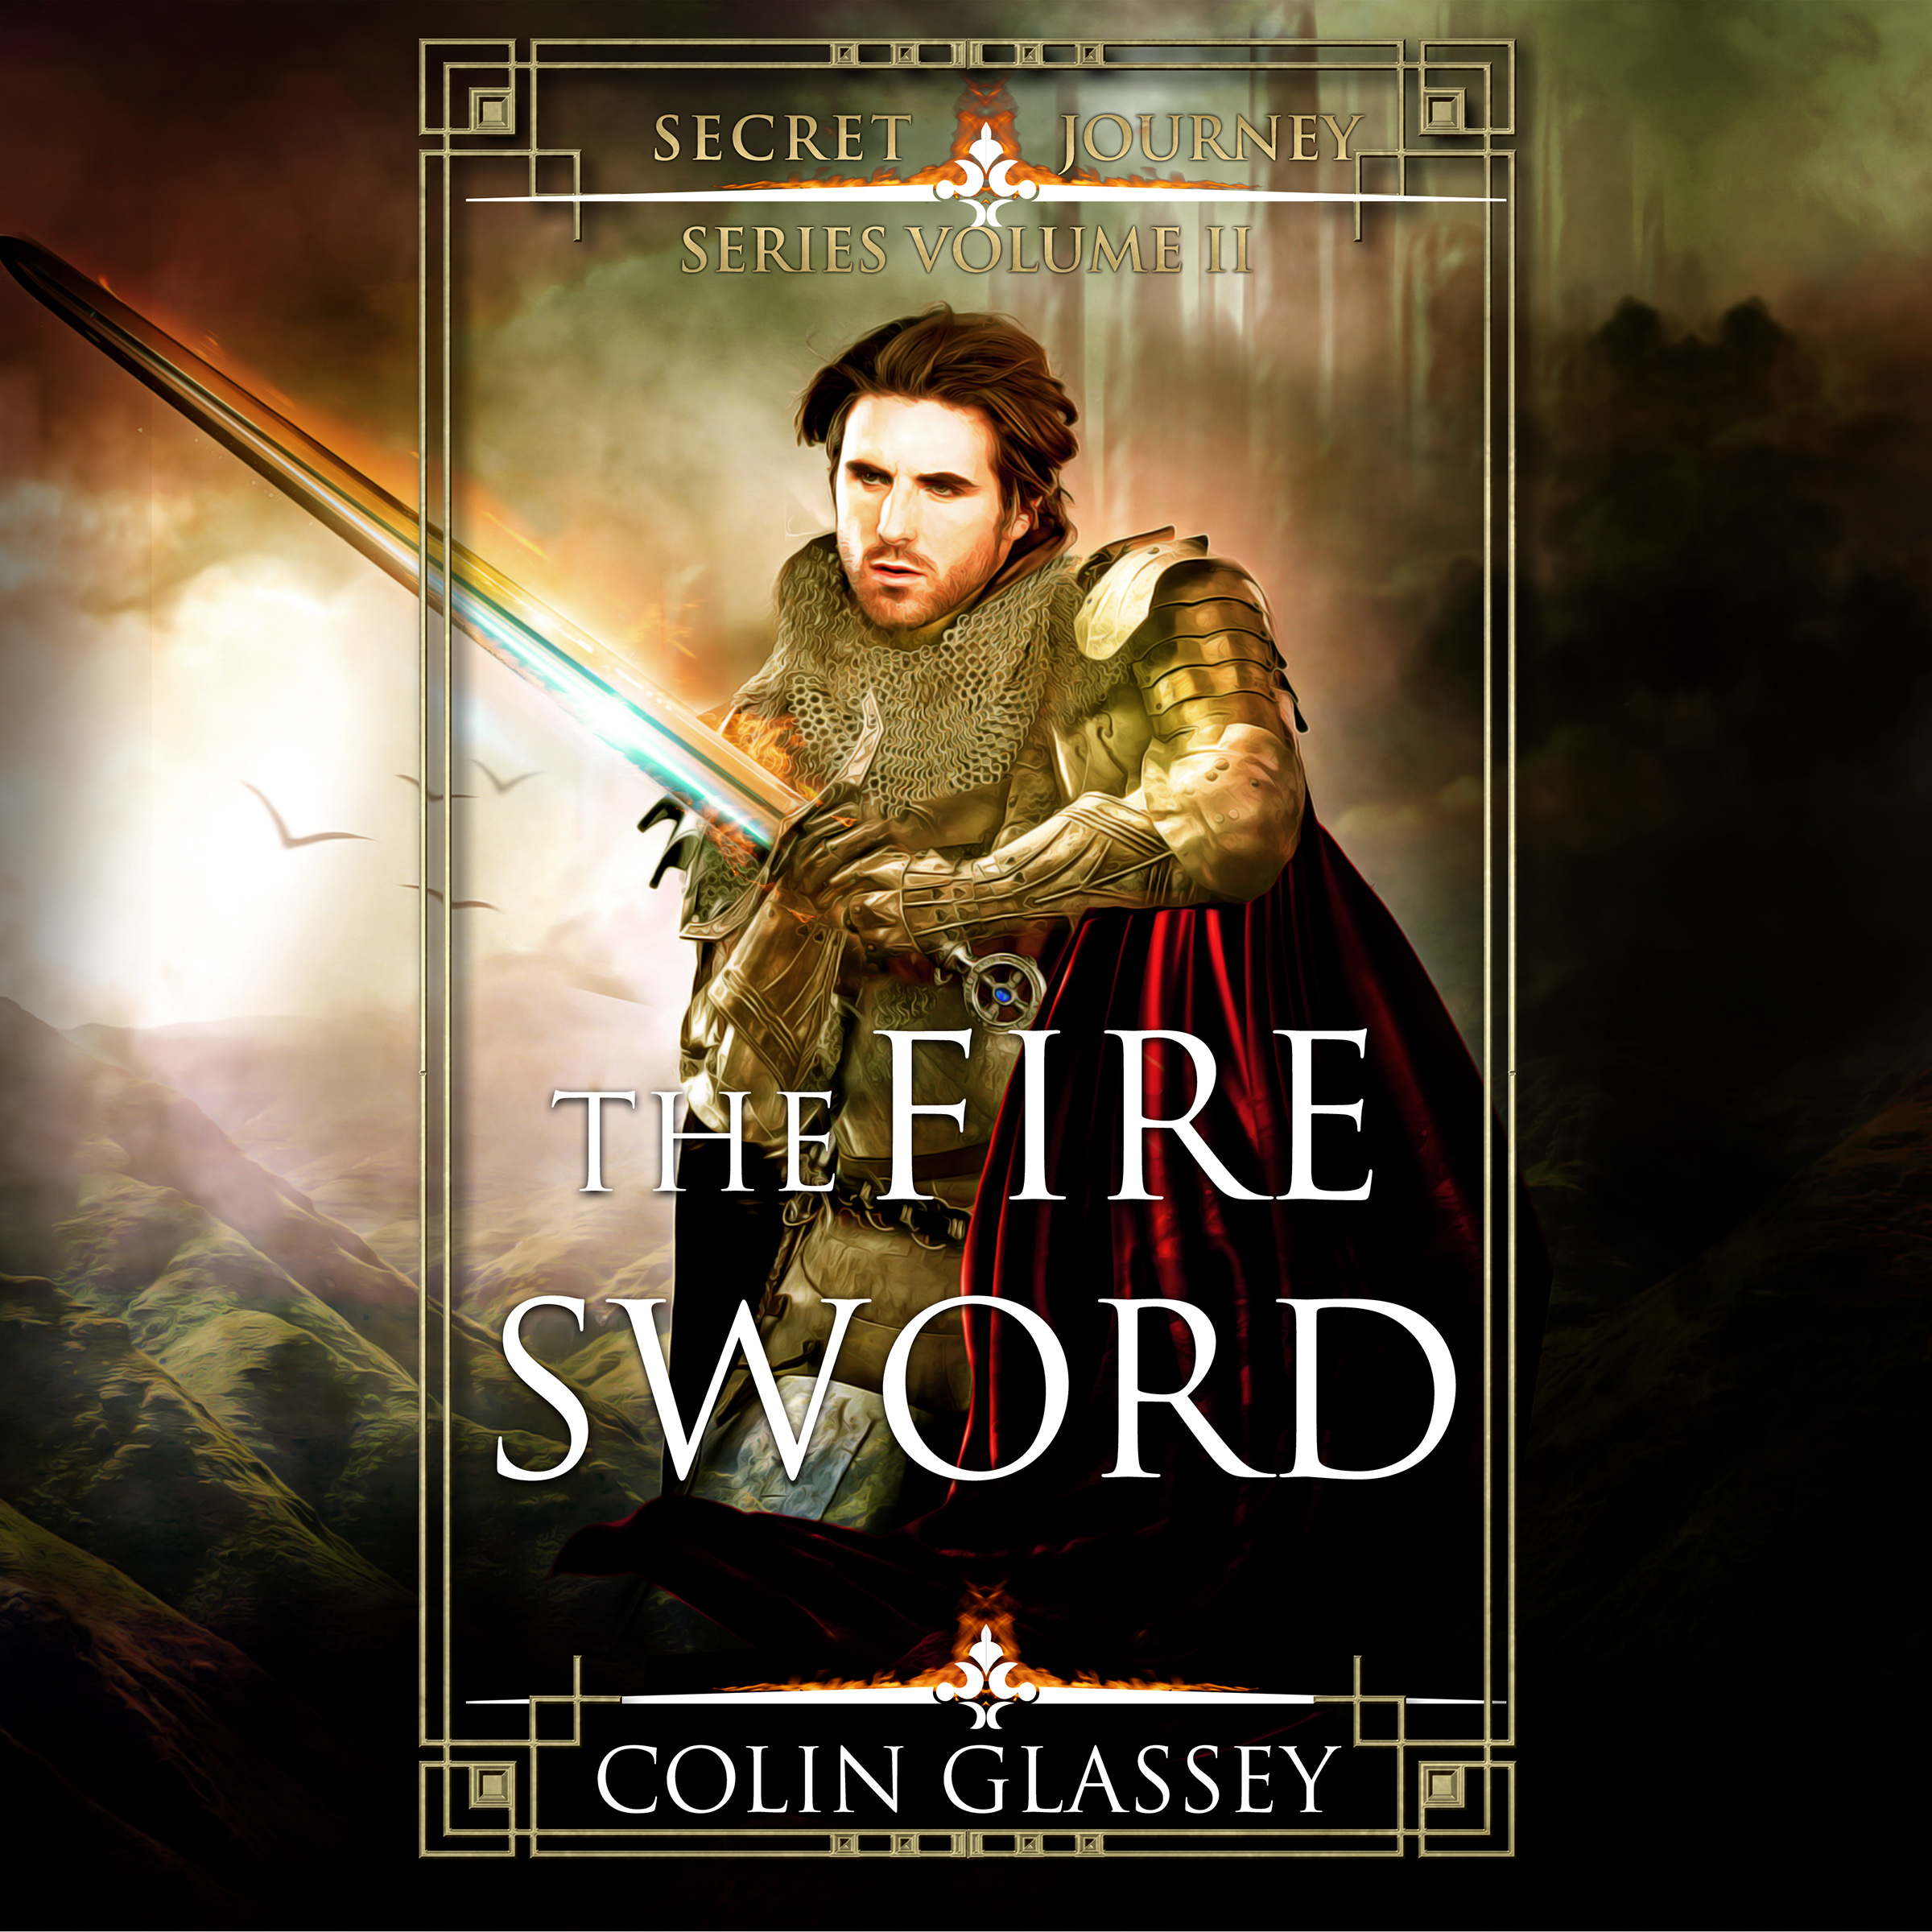 The Fire Sword – AudioBook version is done!